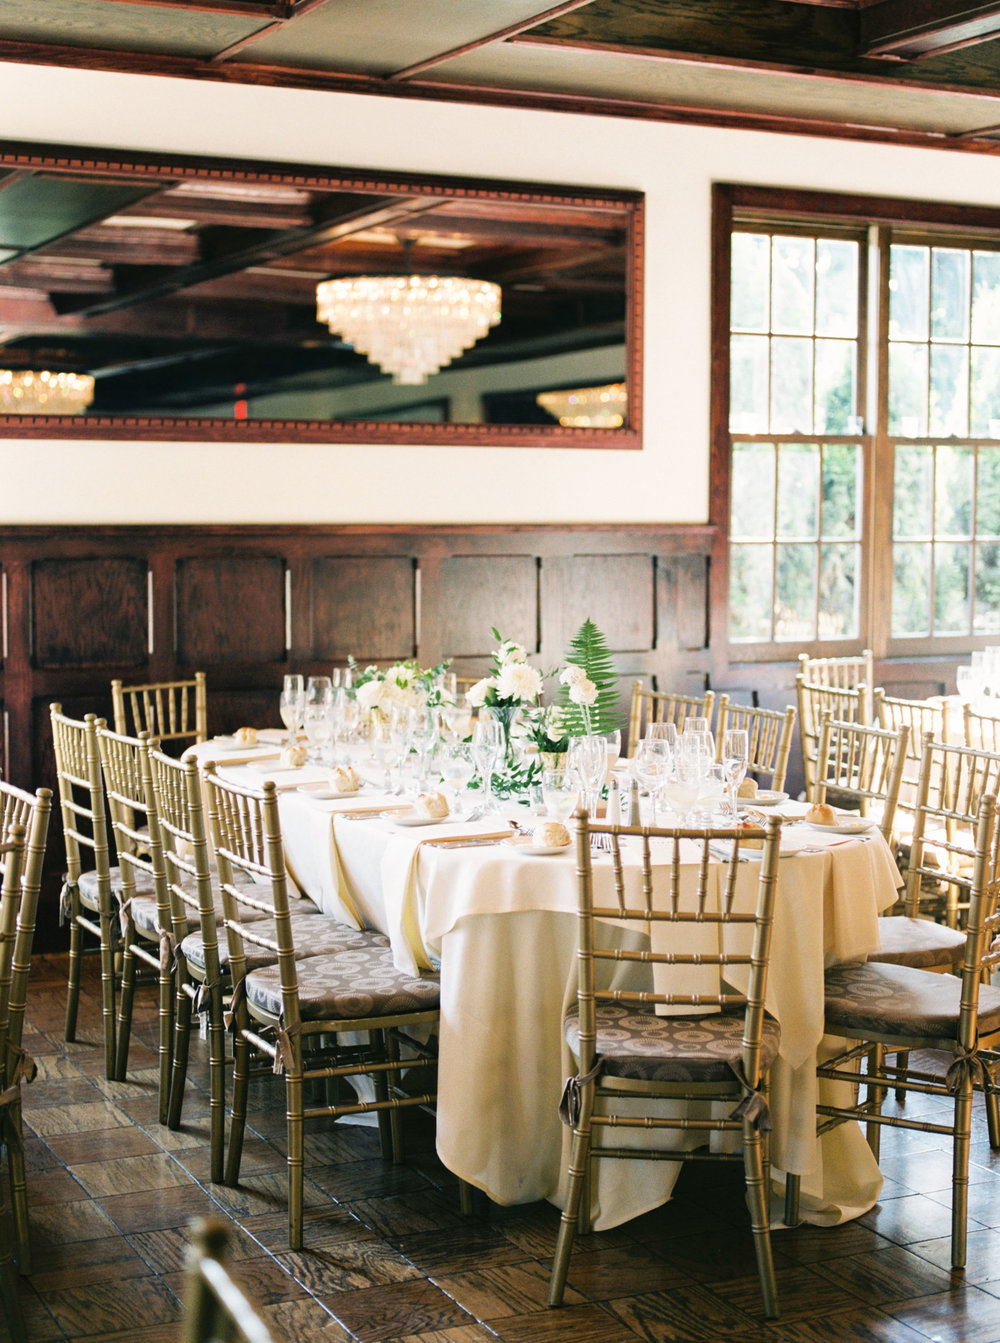 The contrast of dark wood and the bright walls and table linens and gold chairs give this historic space at Hotel du Village a modern feel that's perfect for a summer wedding.